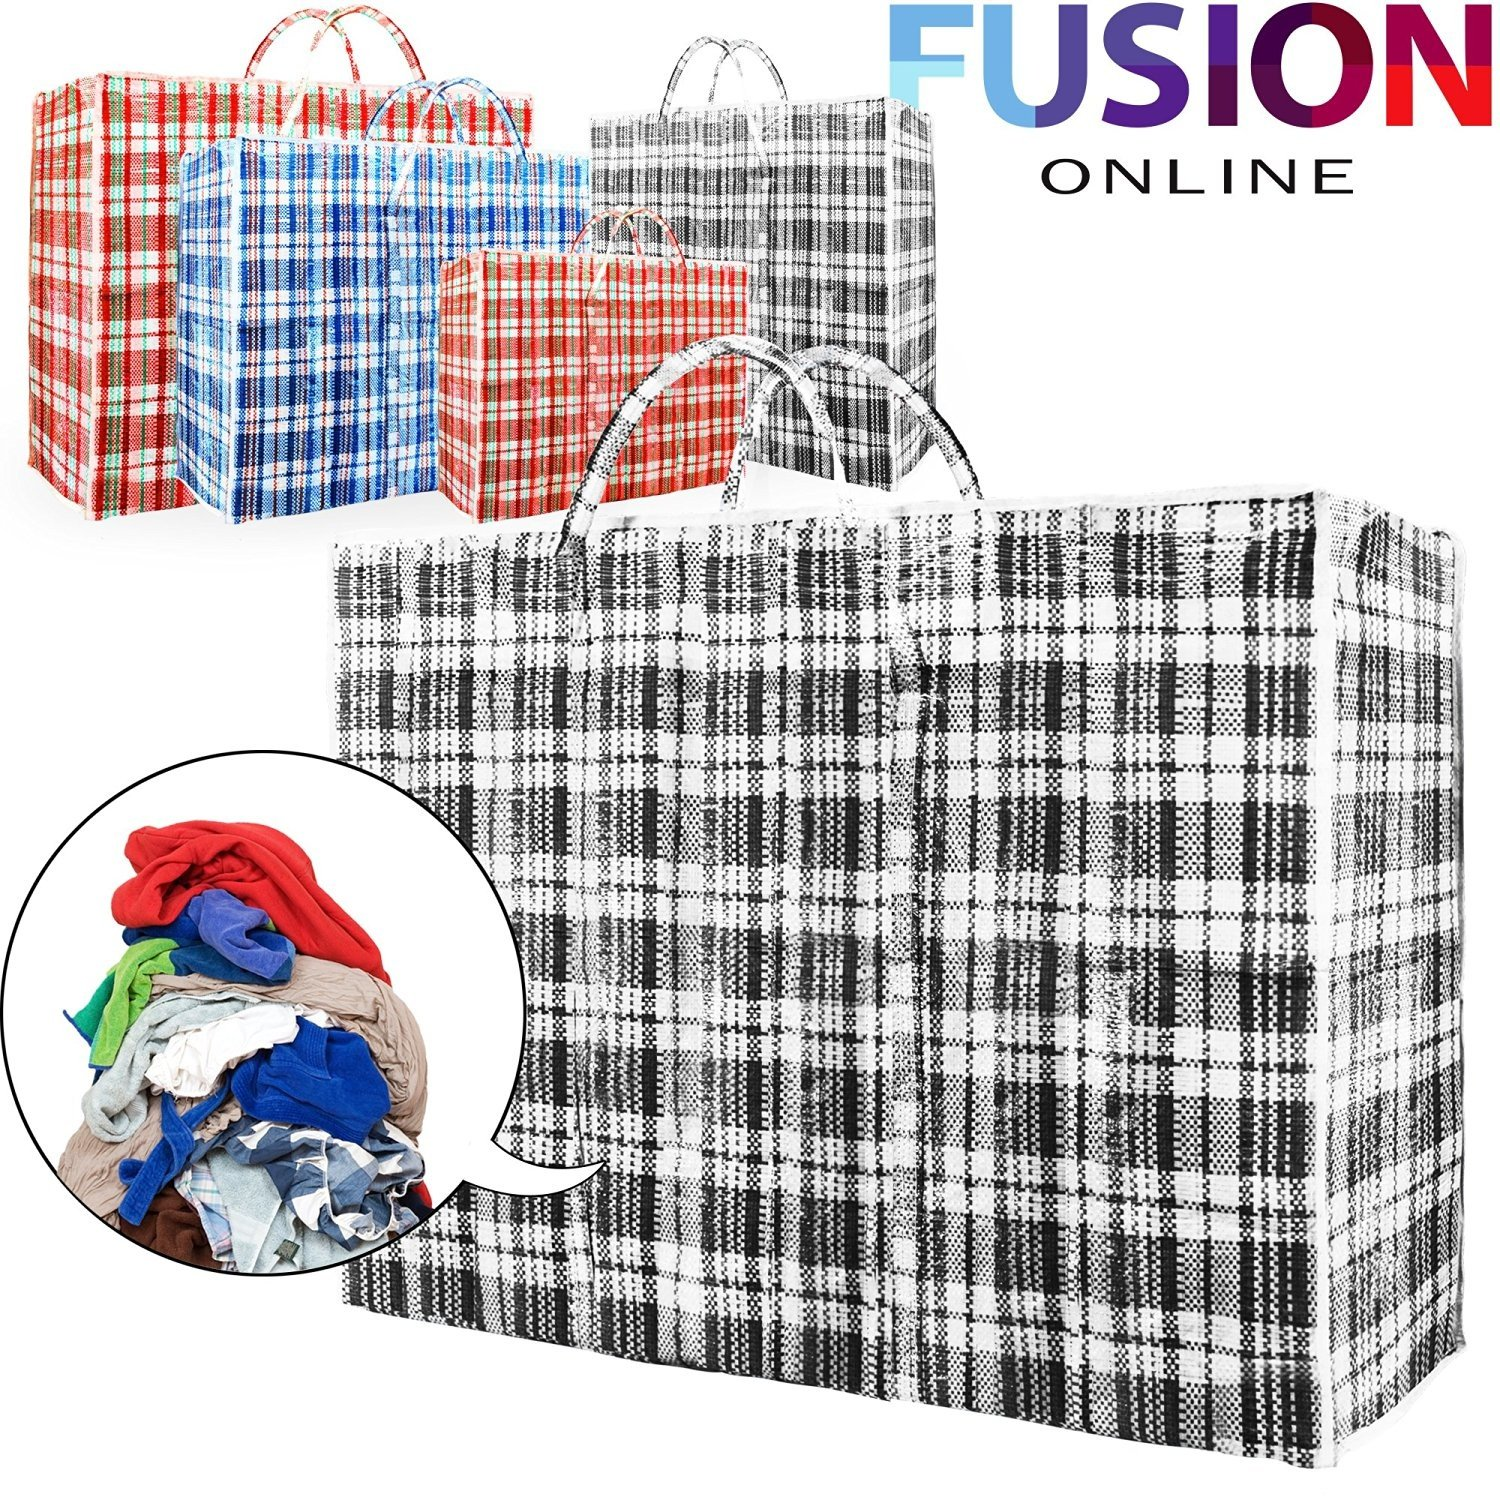 10 x REUSABLE LAUNDRY STORAGE BAG SHOPPING BAGS ZIPPED STRONG JUMBO LARGE LAUNDRY BAG FUSION (TM) (Small)